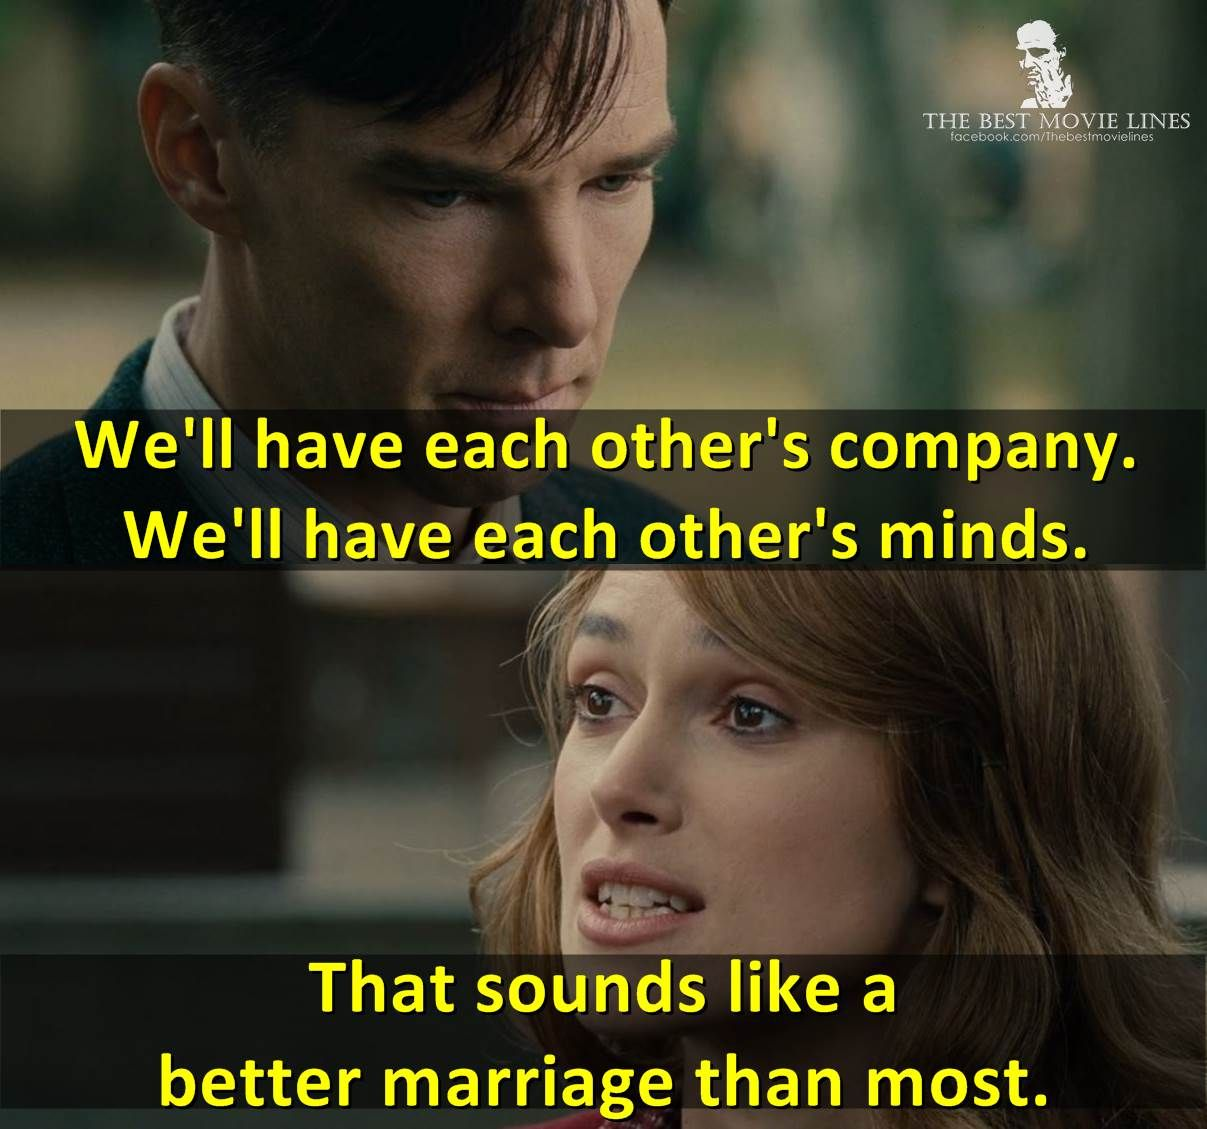 The Imitation Game 2014 Benedict Cumberbatch Keira Knightley Best Movie Lines The Imitation Game Movie Lines